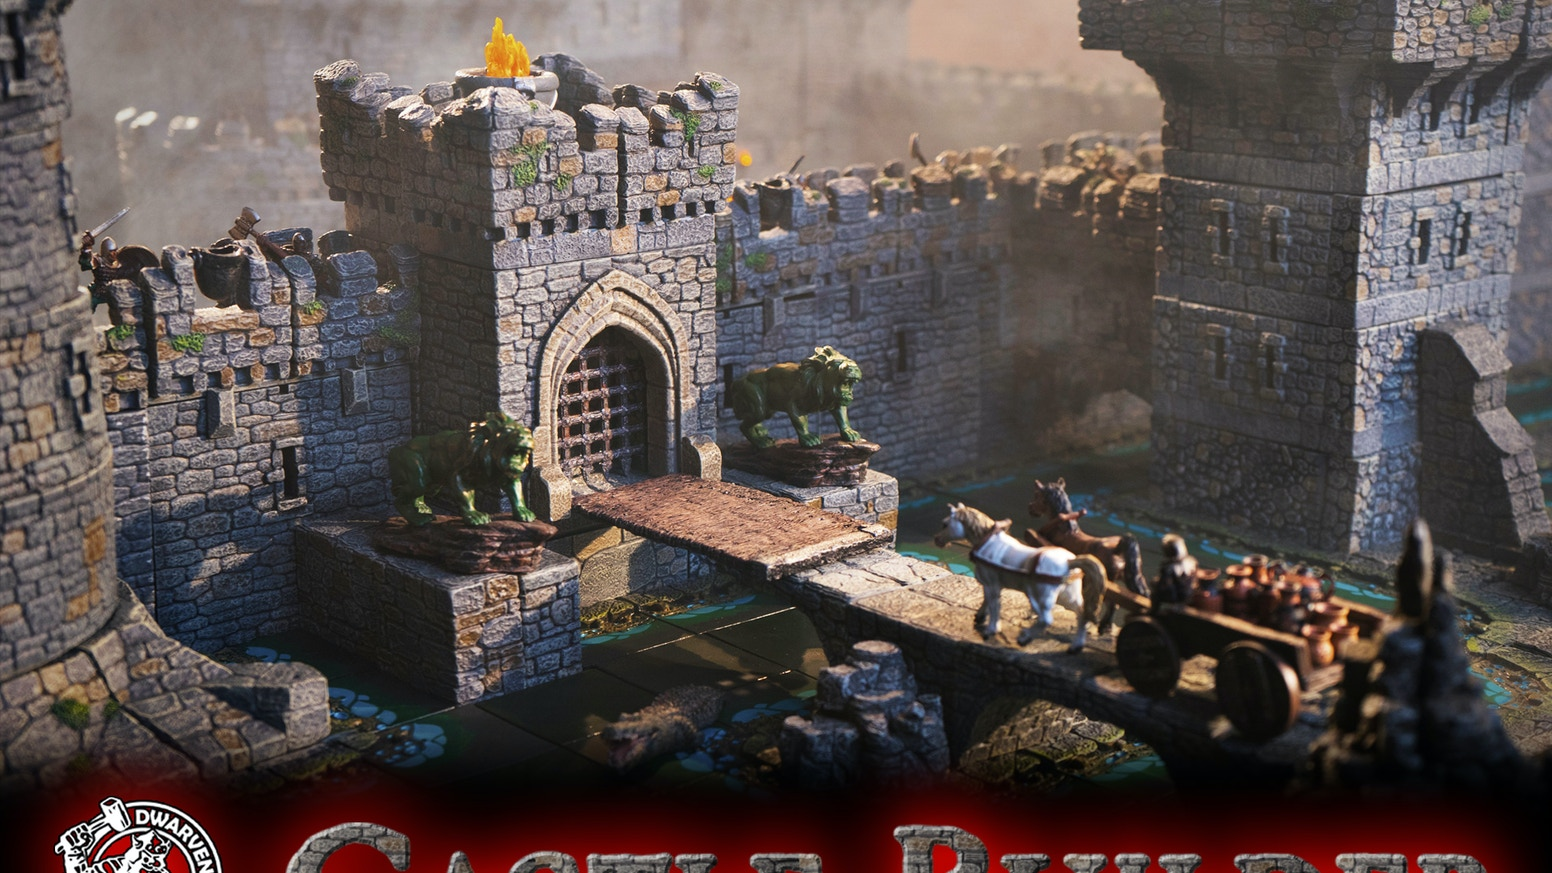 Attention gamers:  Build the ultimate castle using our hand painted (or paint yourself) modular terrain.